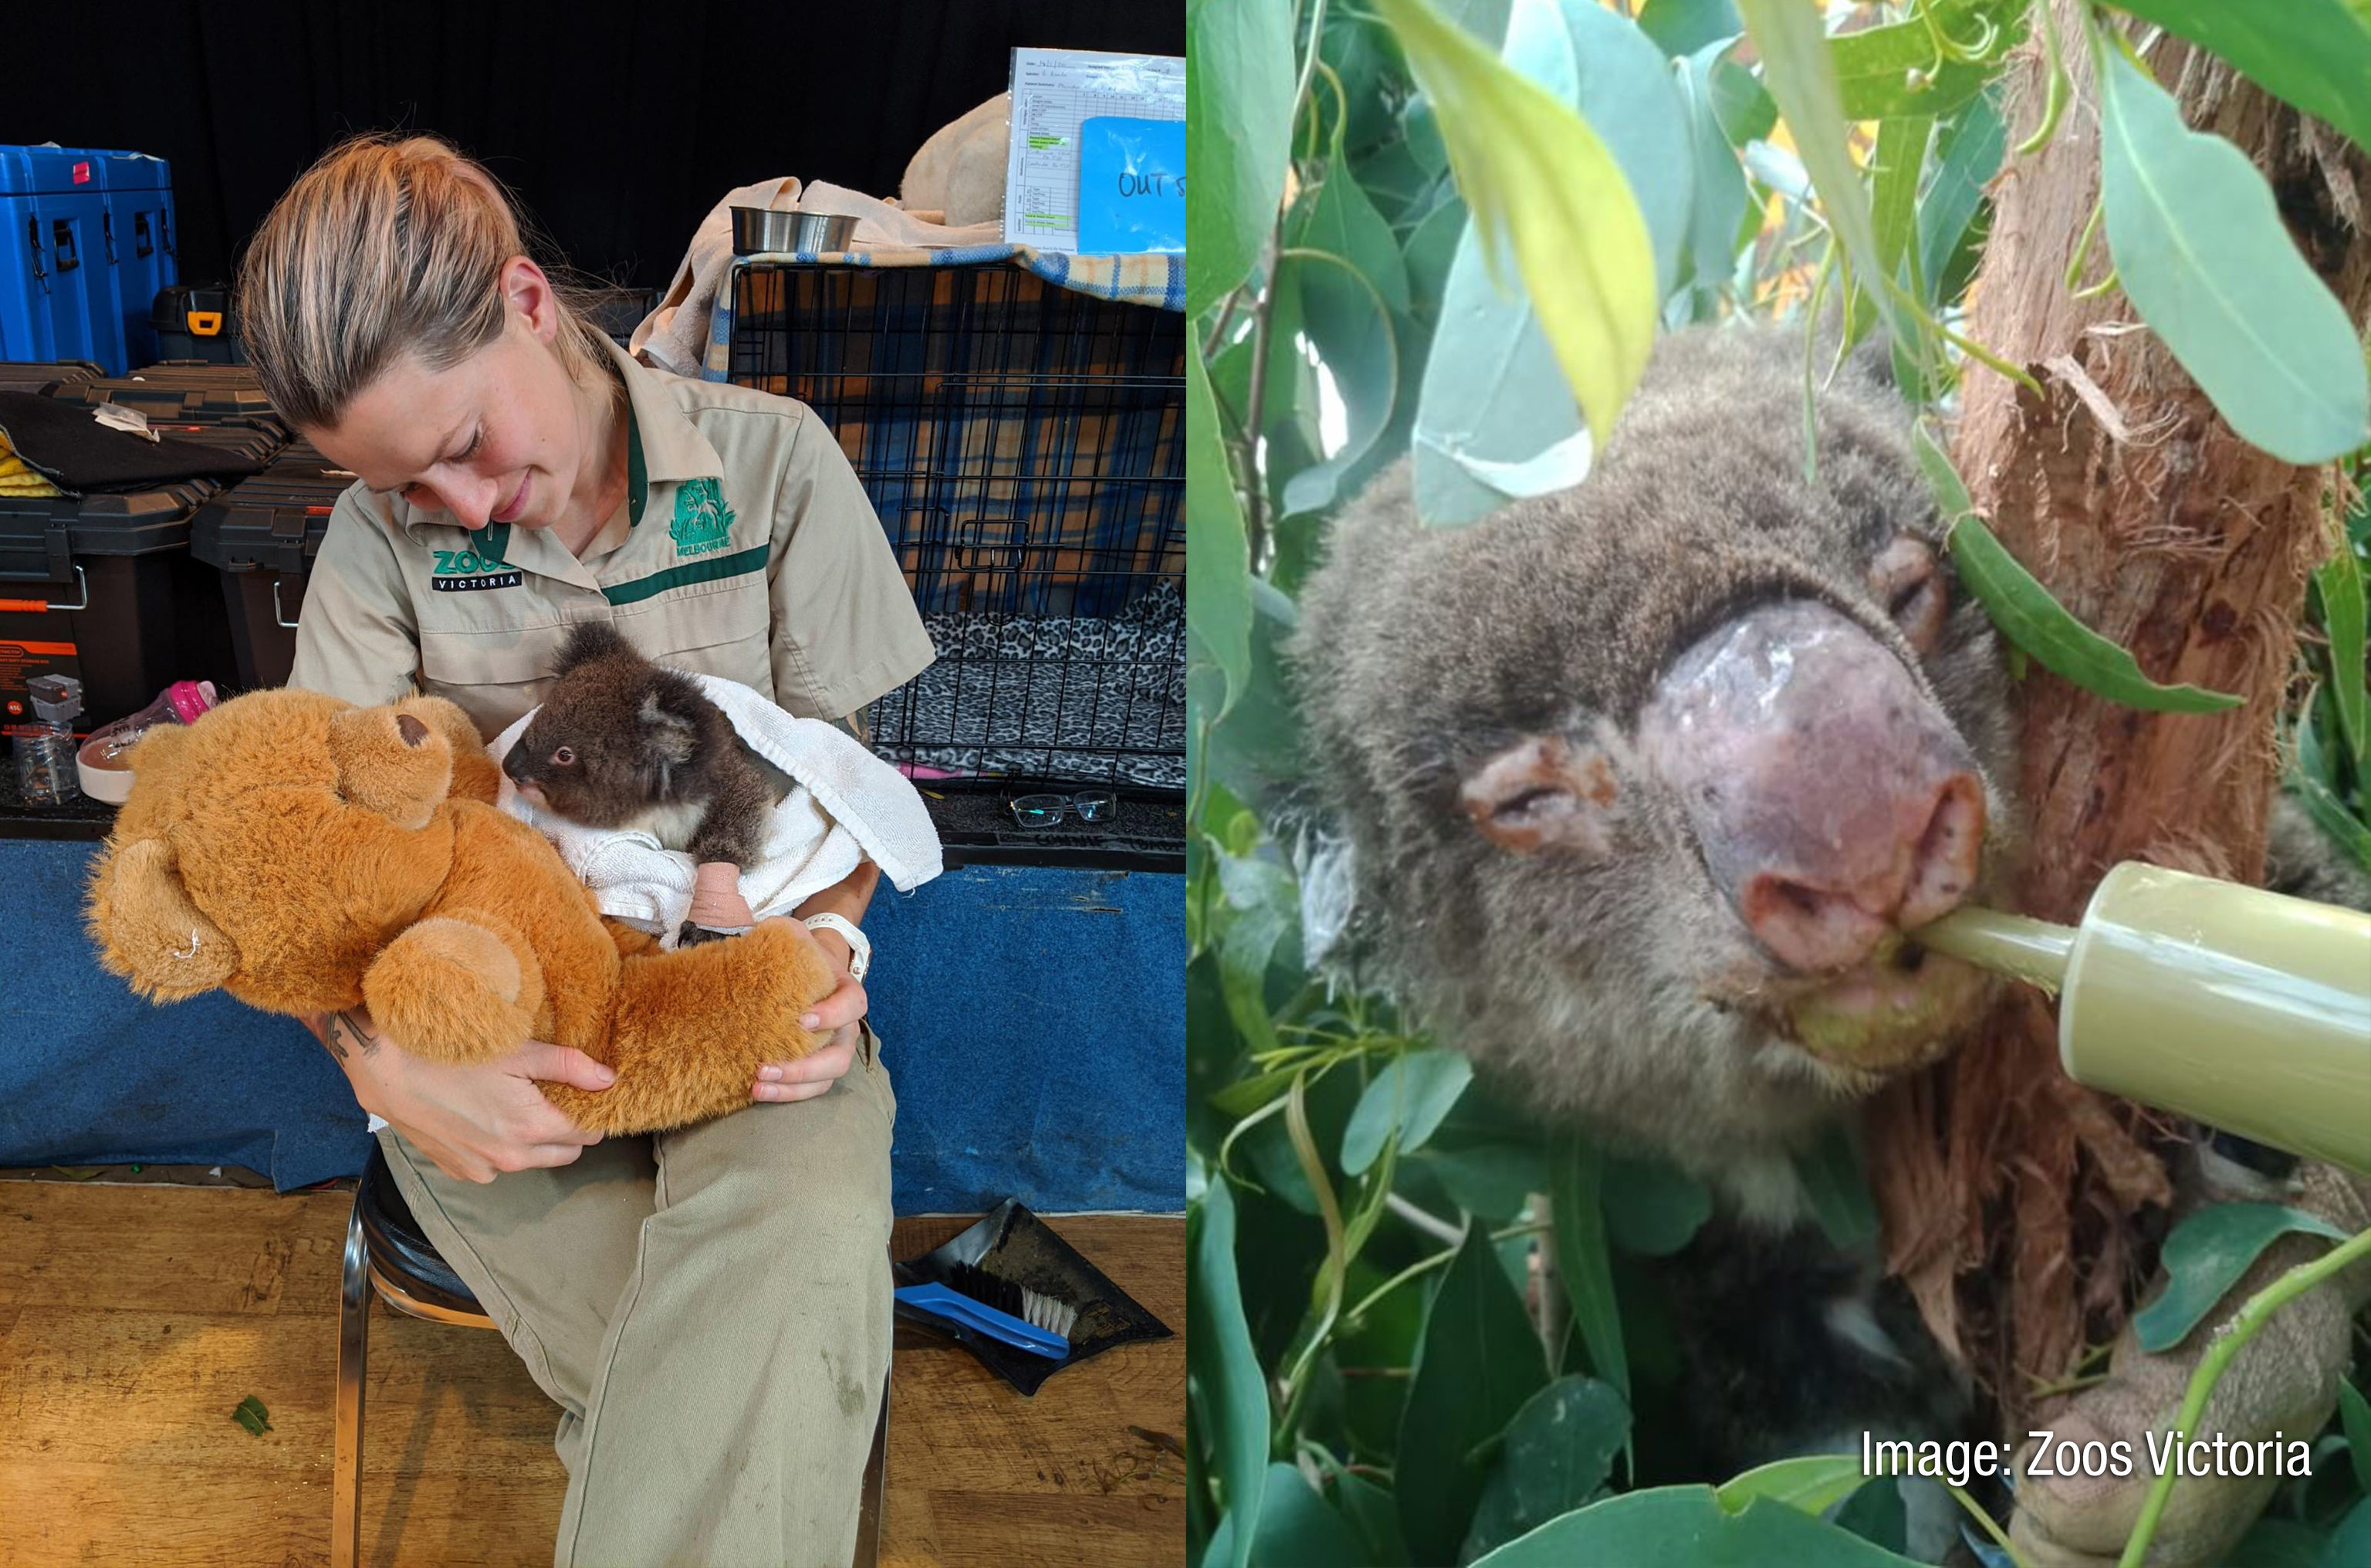 Koalas being cared for by Zoos Victoria